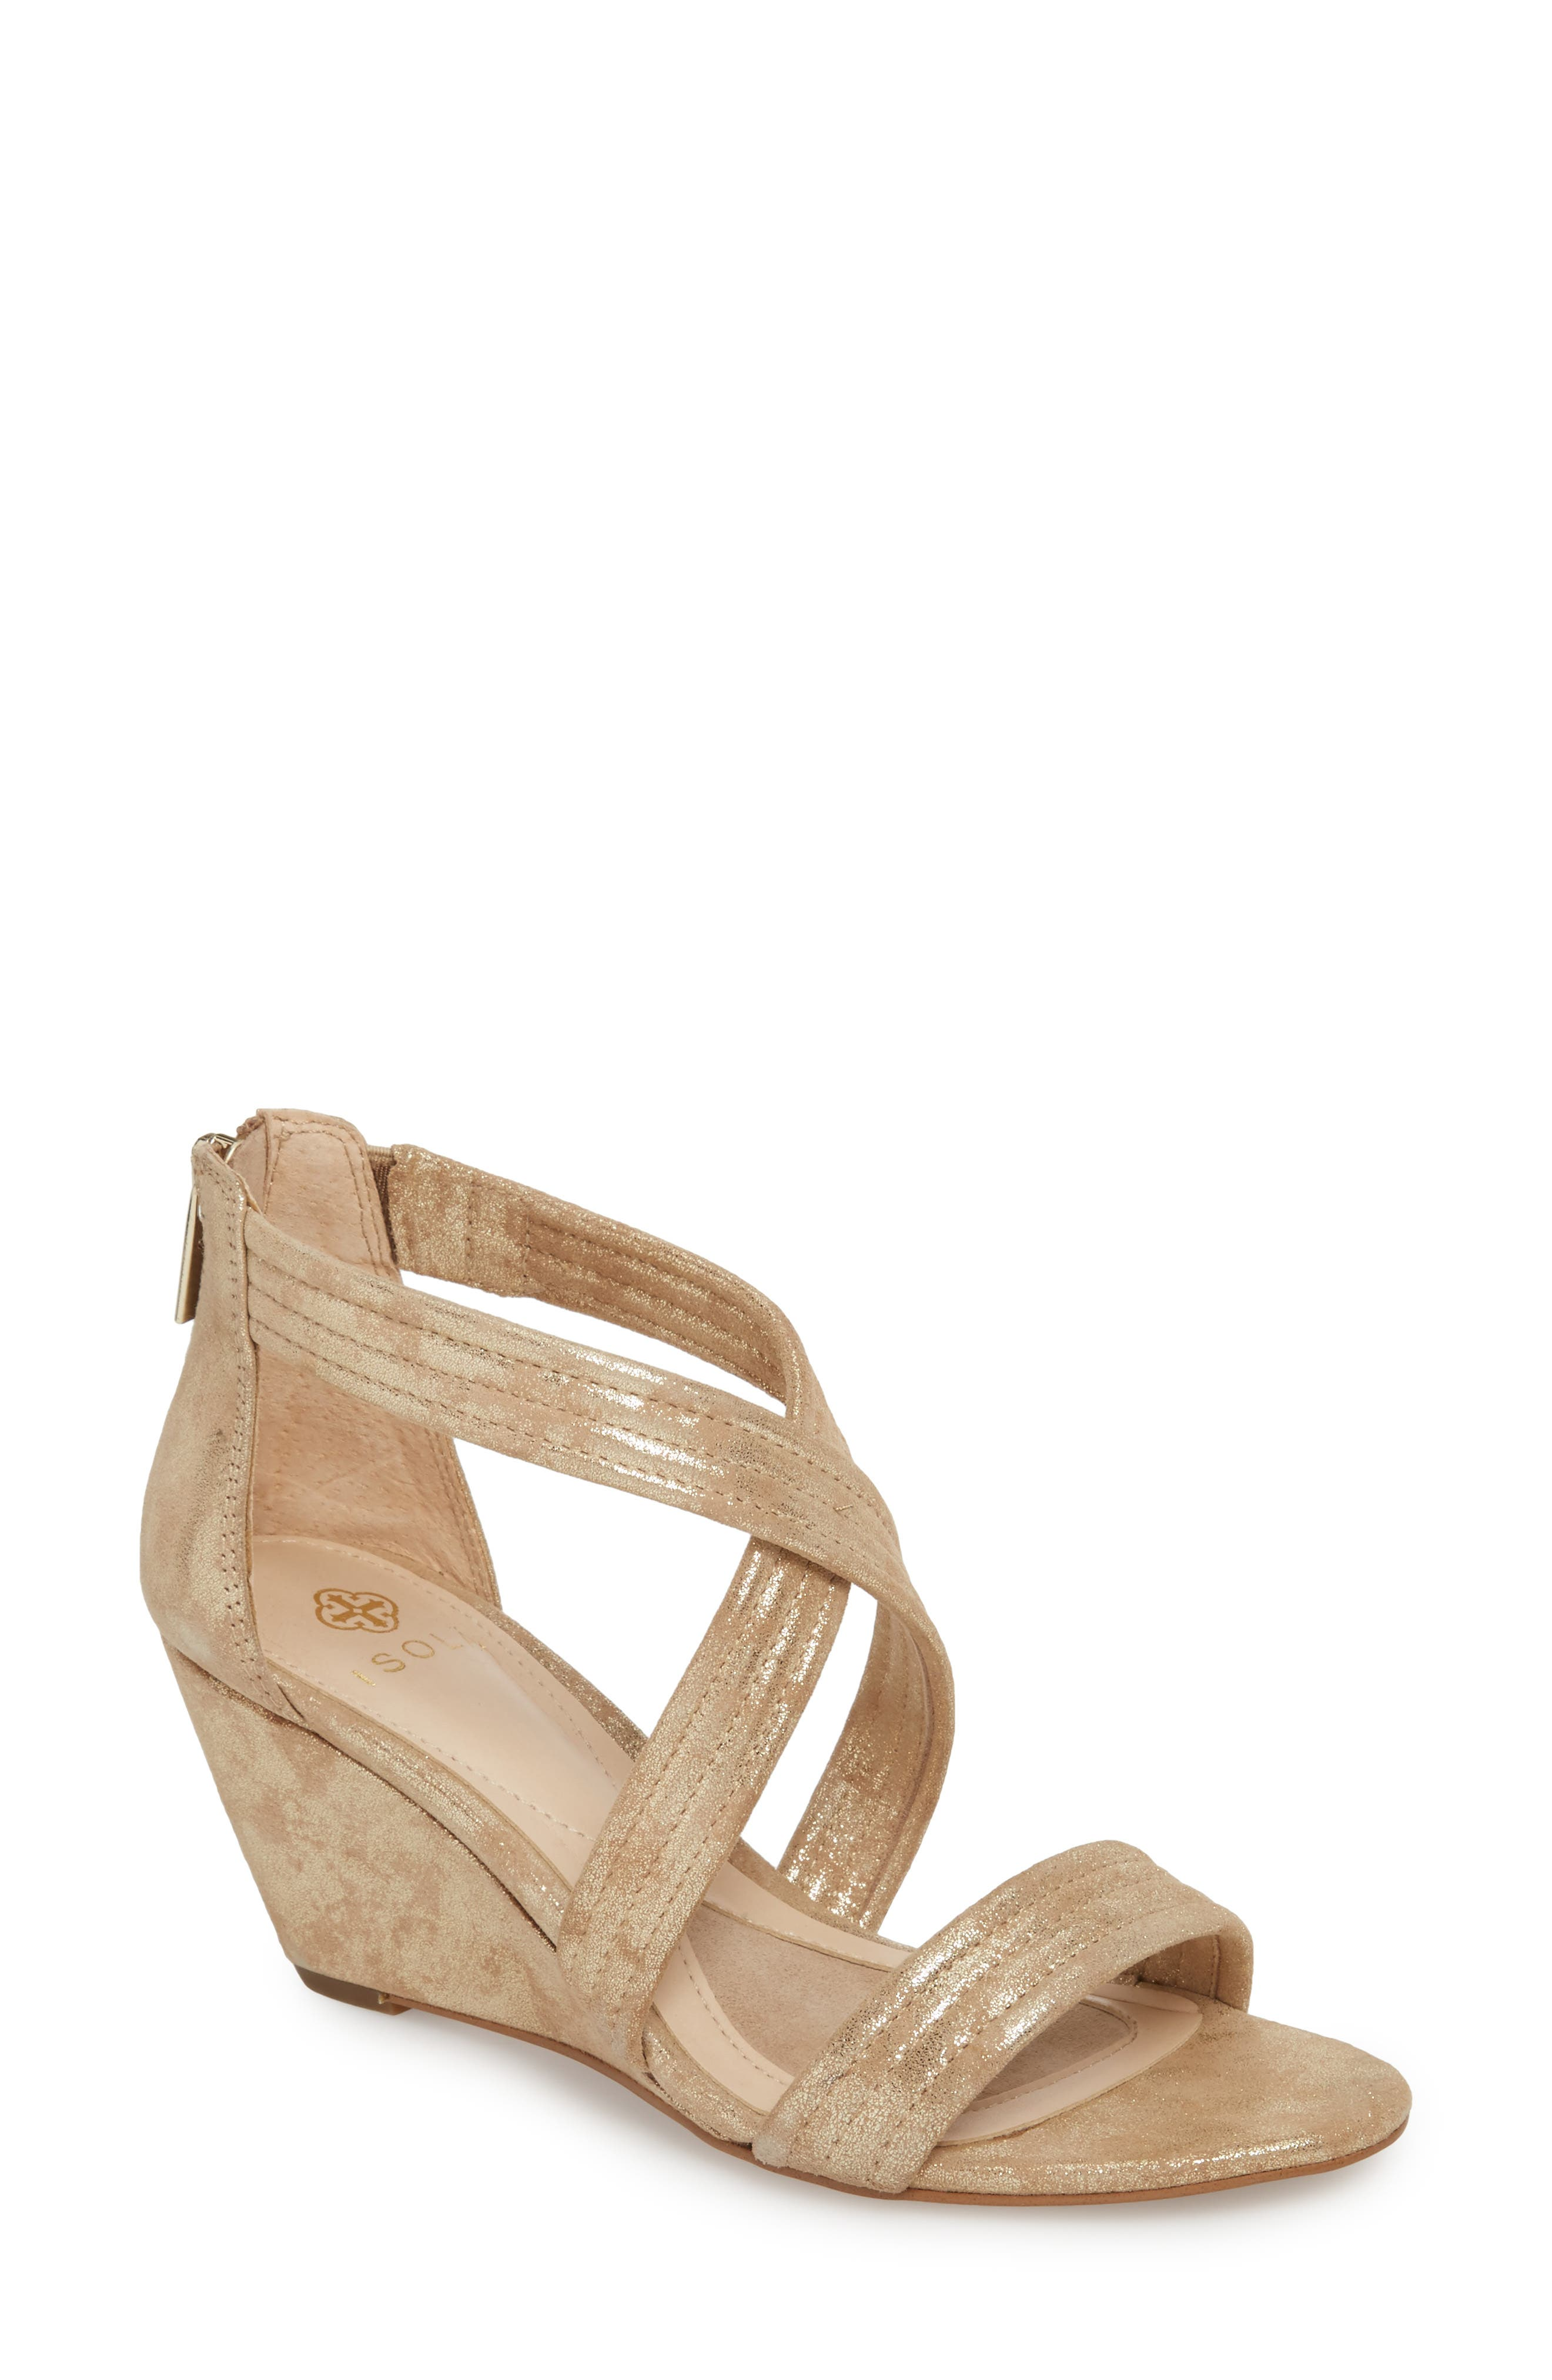 Fia Wedge Sandal,                         Main,                         color, Platino Distressed Suede